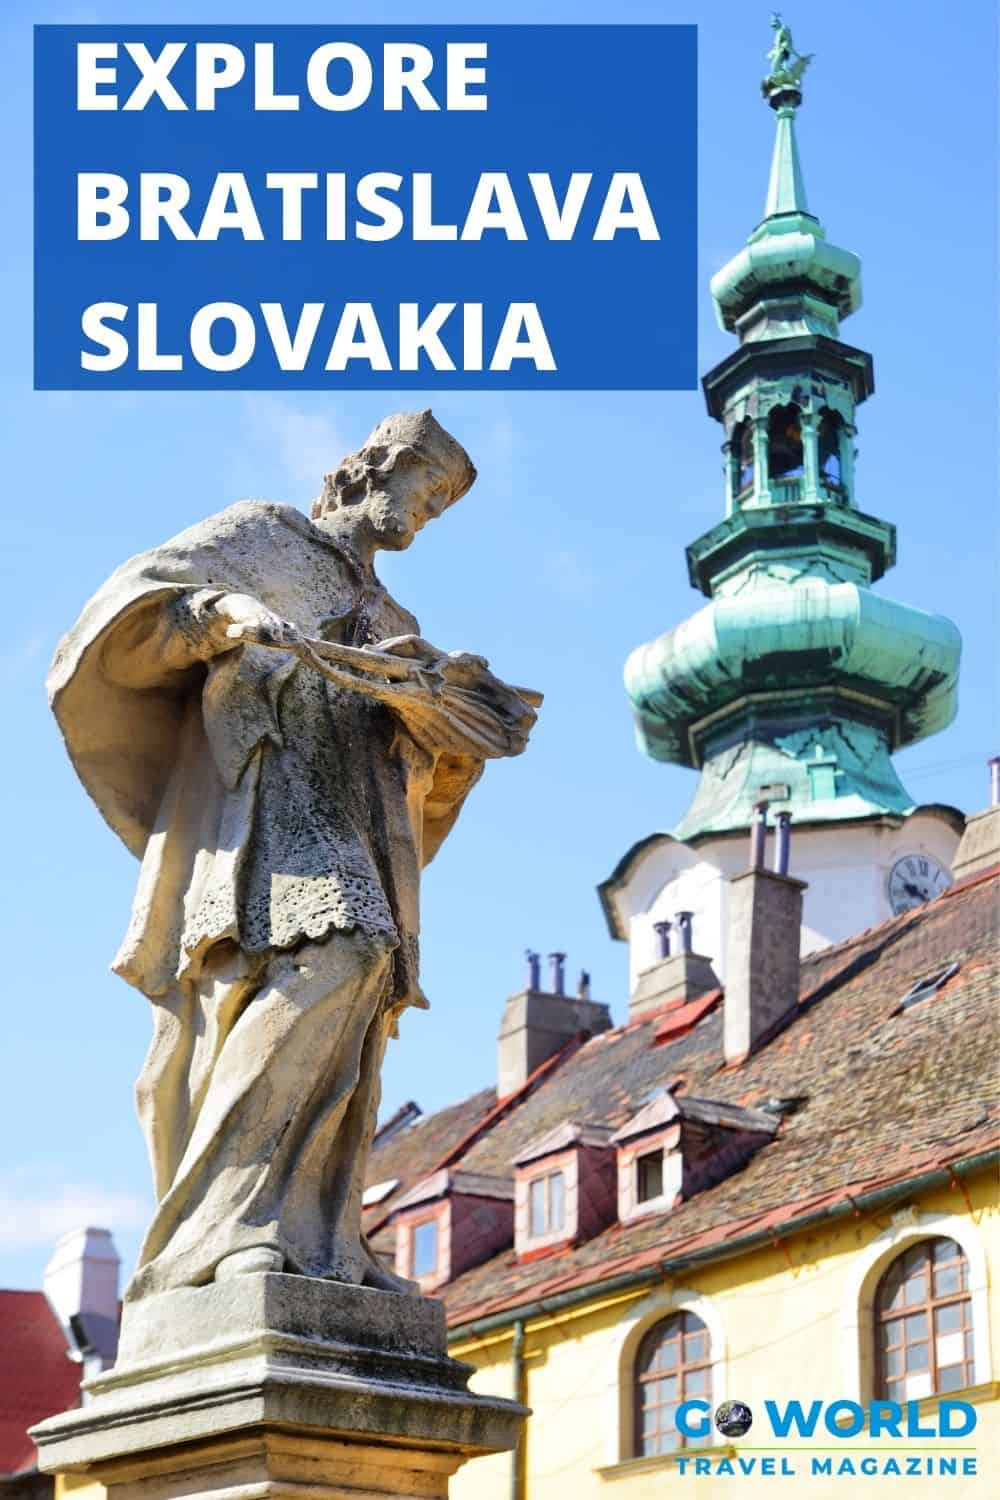 Want to know what to do in Bratislava, Slovakia? Follow as we explore the city full of historic sites, beautiful palaces, castles & squares. #Travelslovakia #bratislavaslovakia